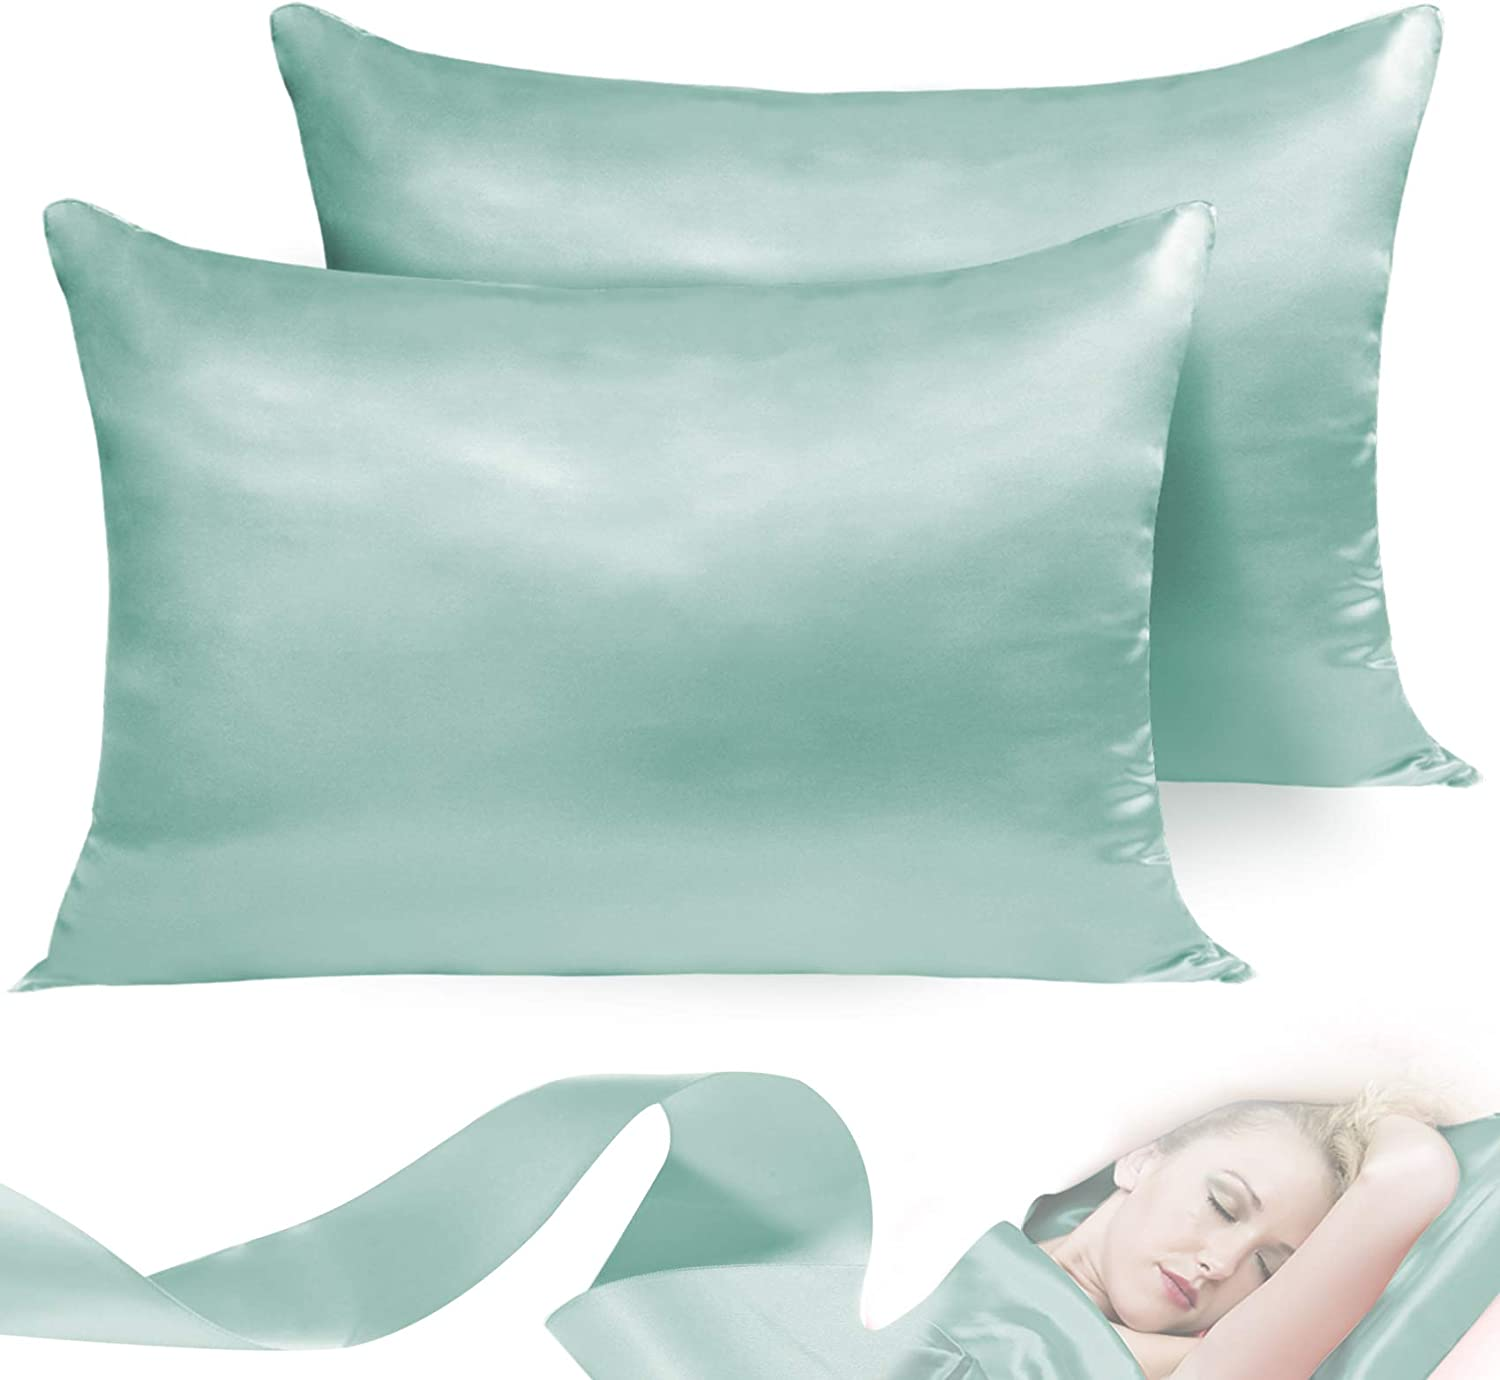 Leccod 2 Pack Silky Satin Pillowcase for Hair and Skin Cool Super Soft and Luxury Pillow Cases Covers with Envelope Closure (Spa Green, Standard: 20x26)